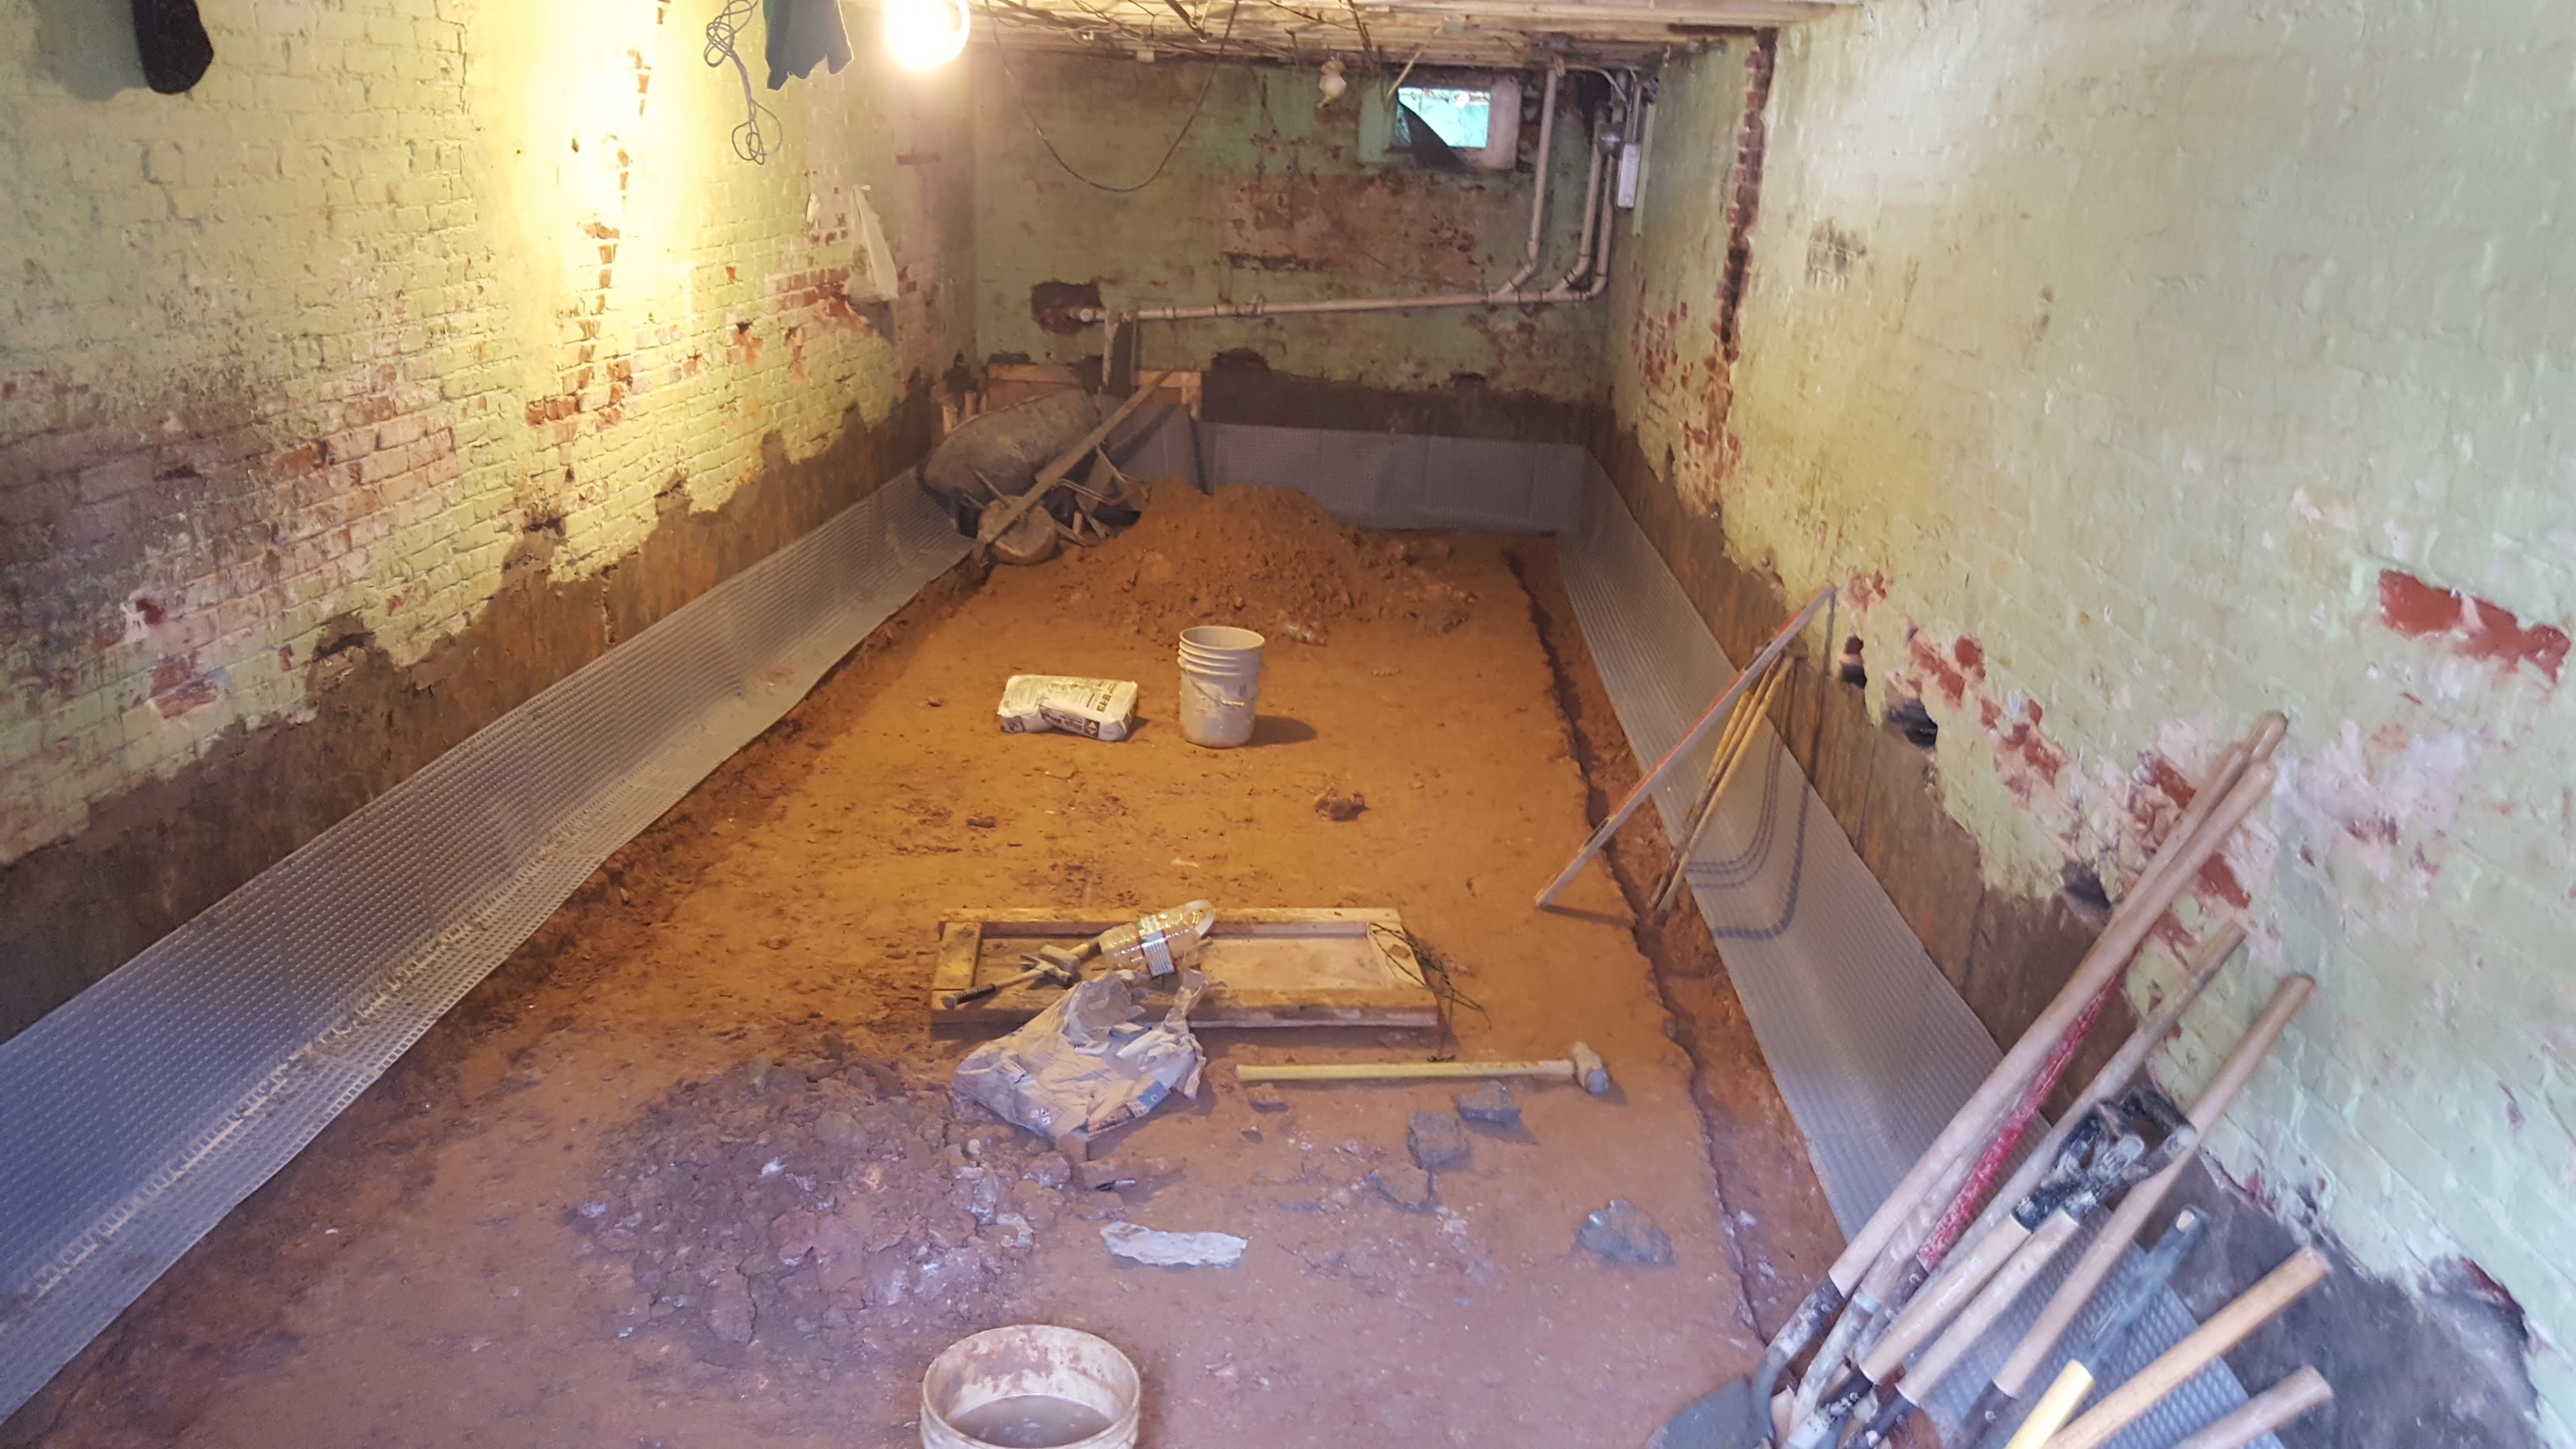 Basement Excavation Cost Per Square Foot. If